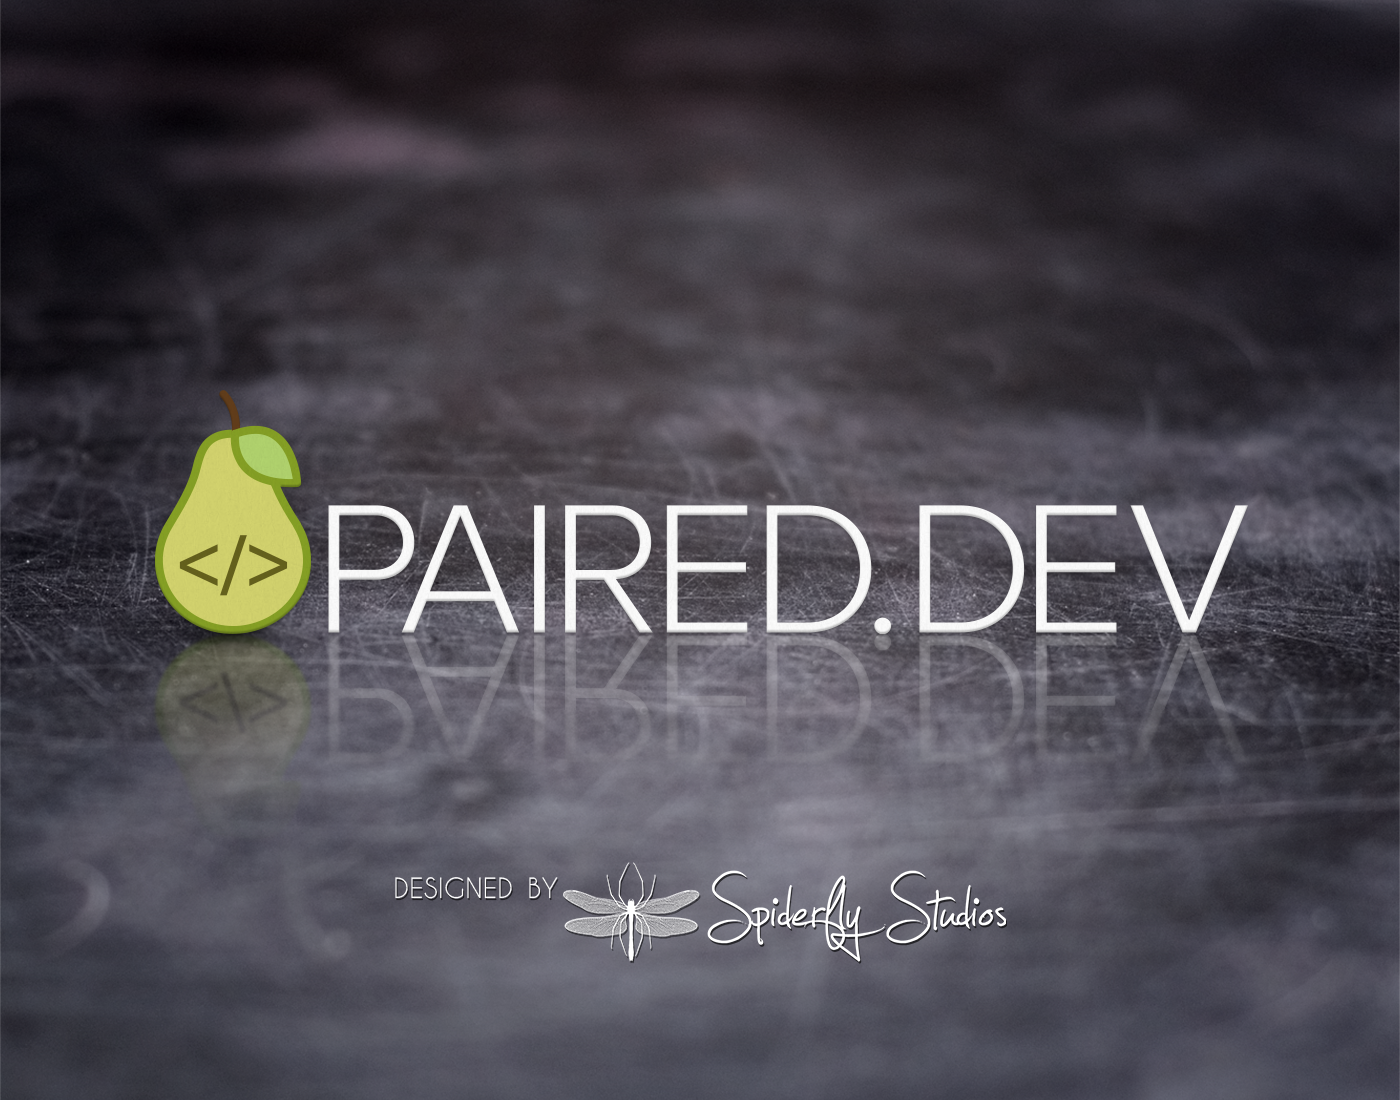 Paired Dev Logo Design - Spiderfly Studios